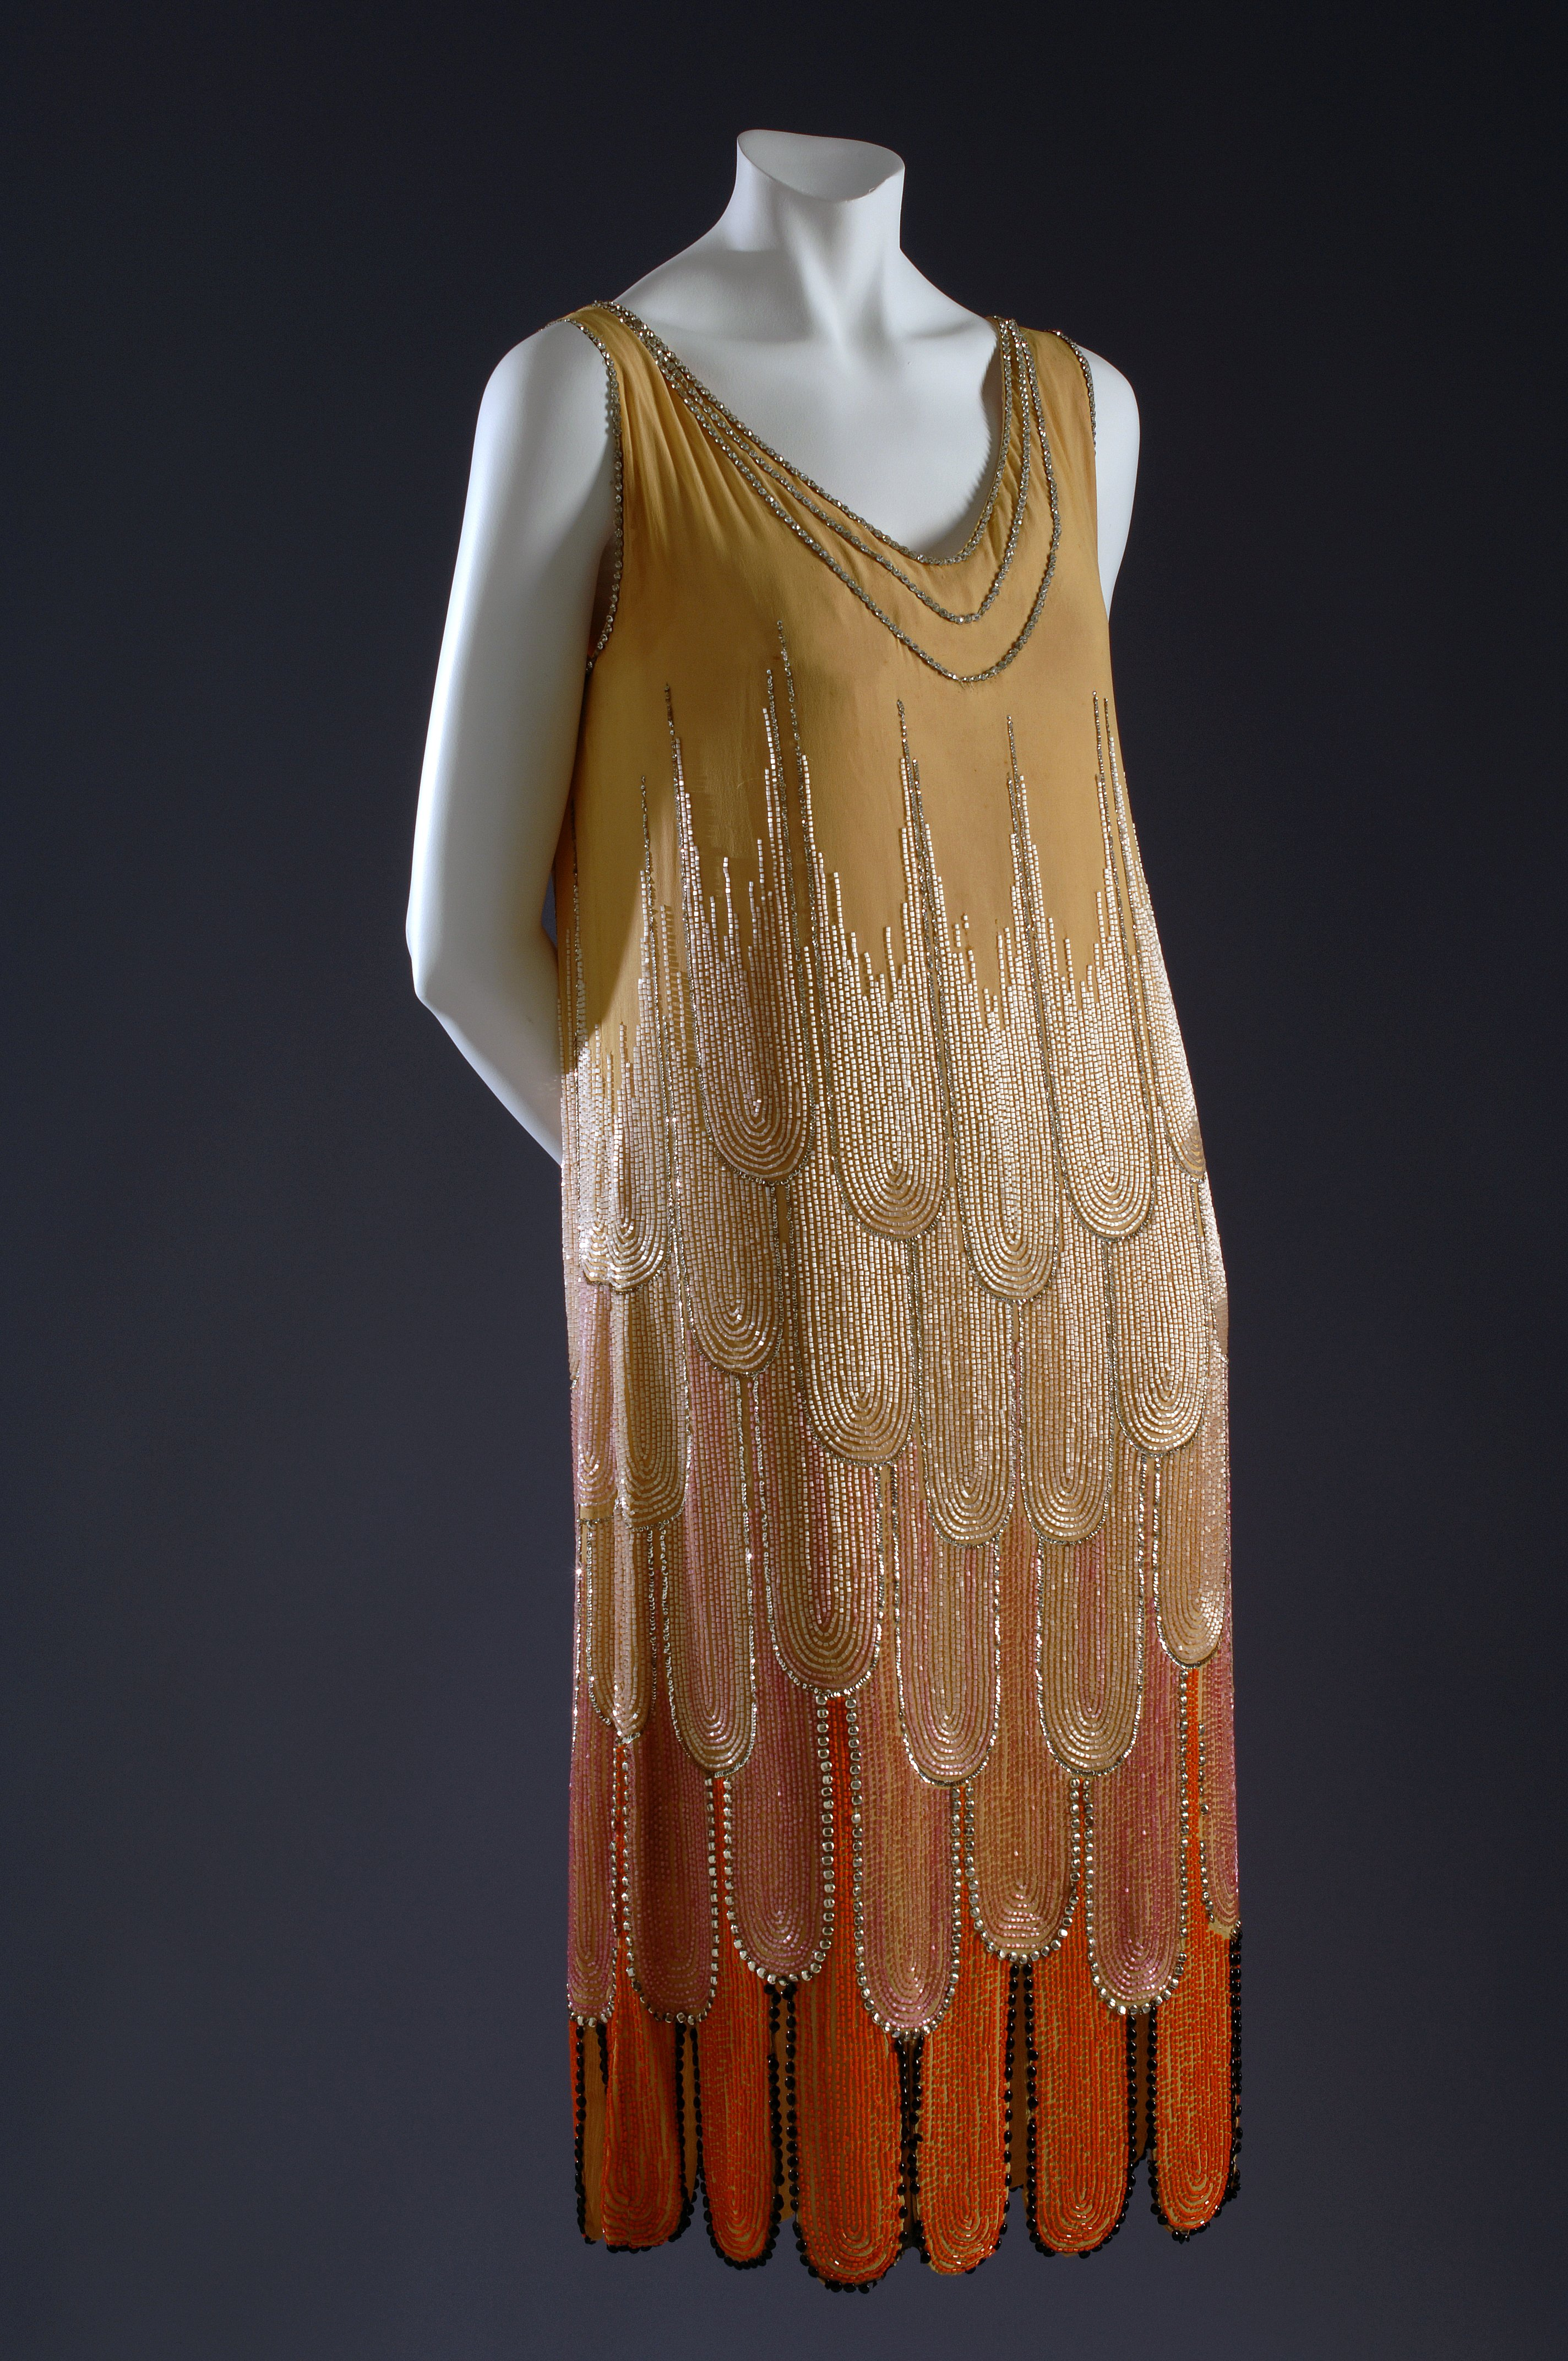 ONLINE The Roaring Twenties and The Swinging Sixties Virtual Exhibition at the Museum at FIT at Museum at FIT